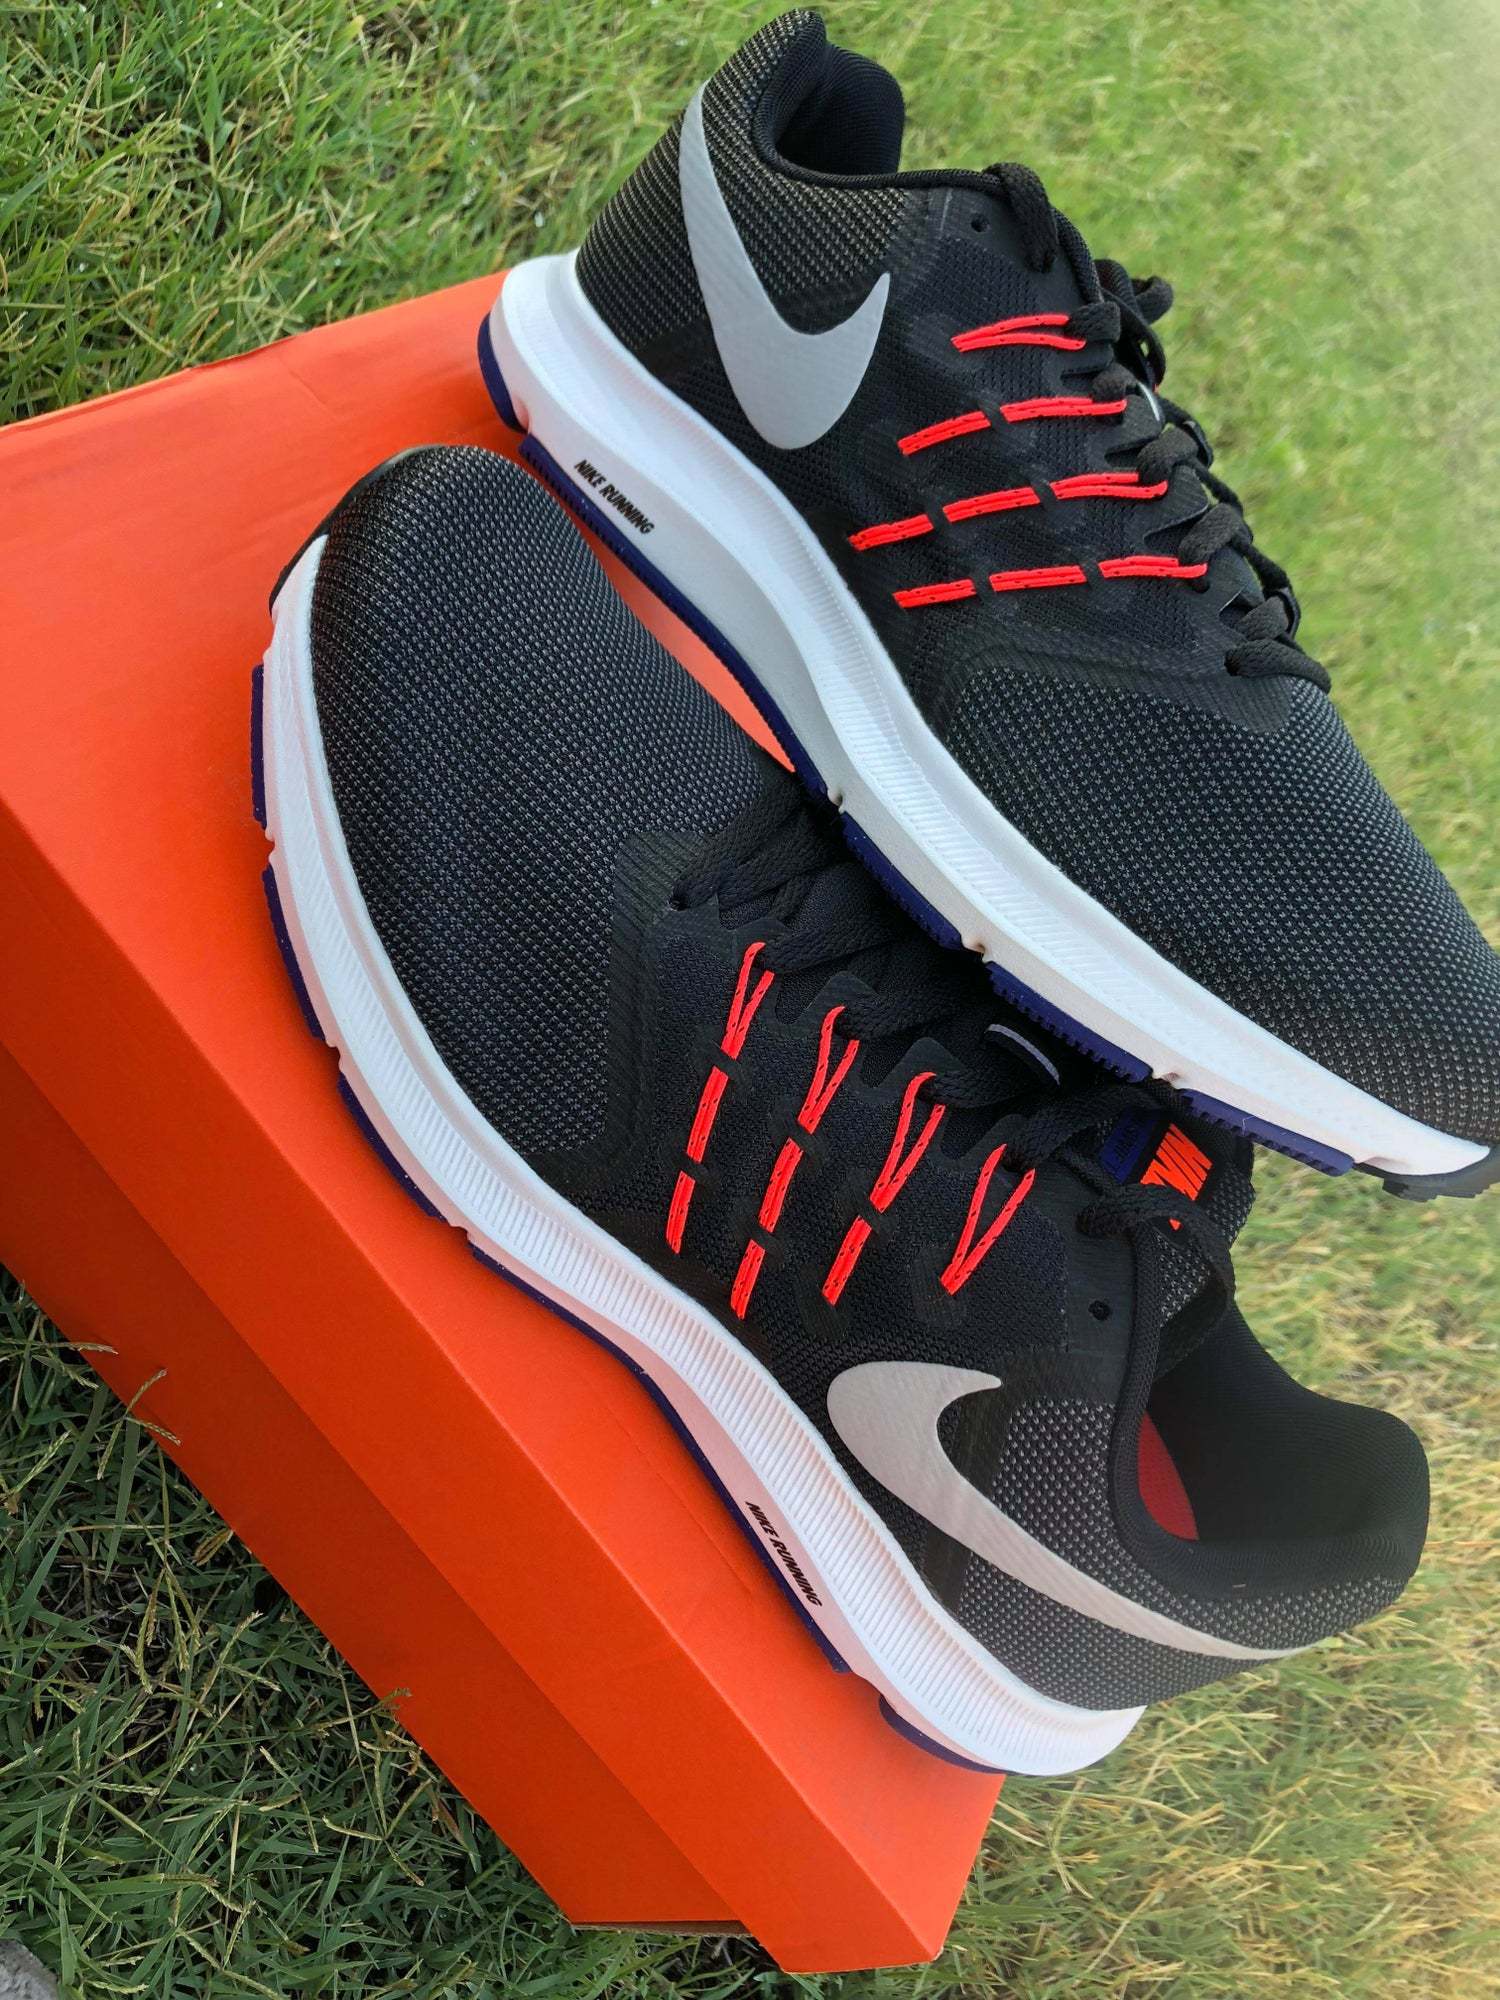 808be6152 Image of Nike Run Swift Men s Running Shoe - Black   Matte Silver   Bright  Crimson